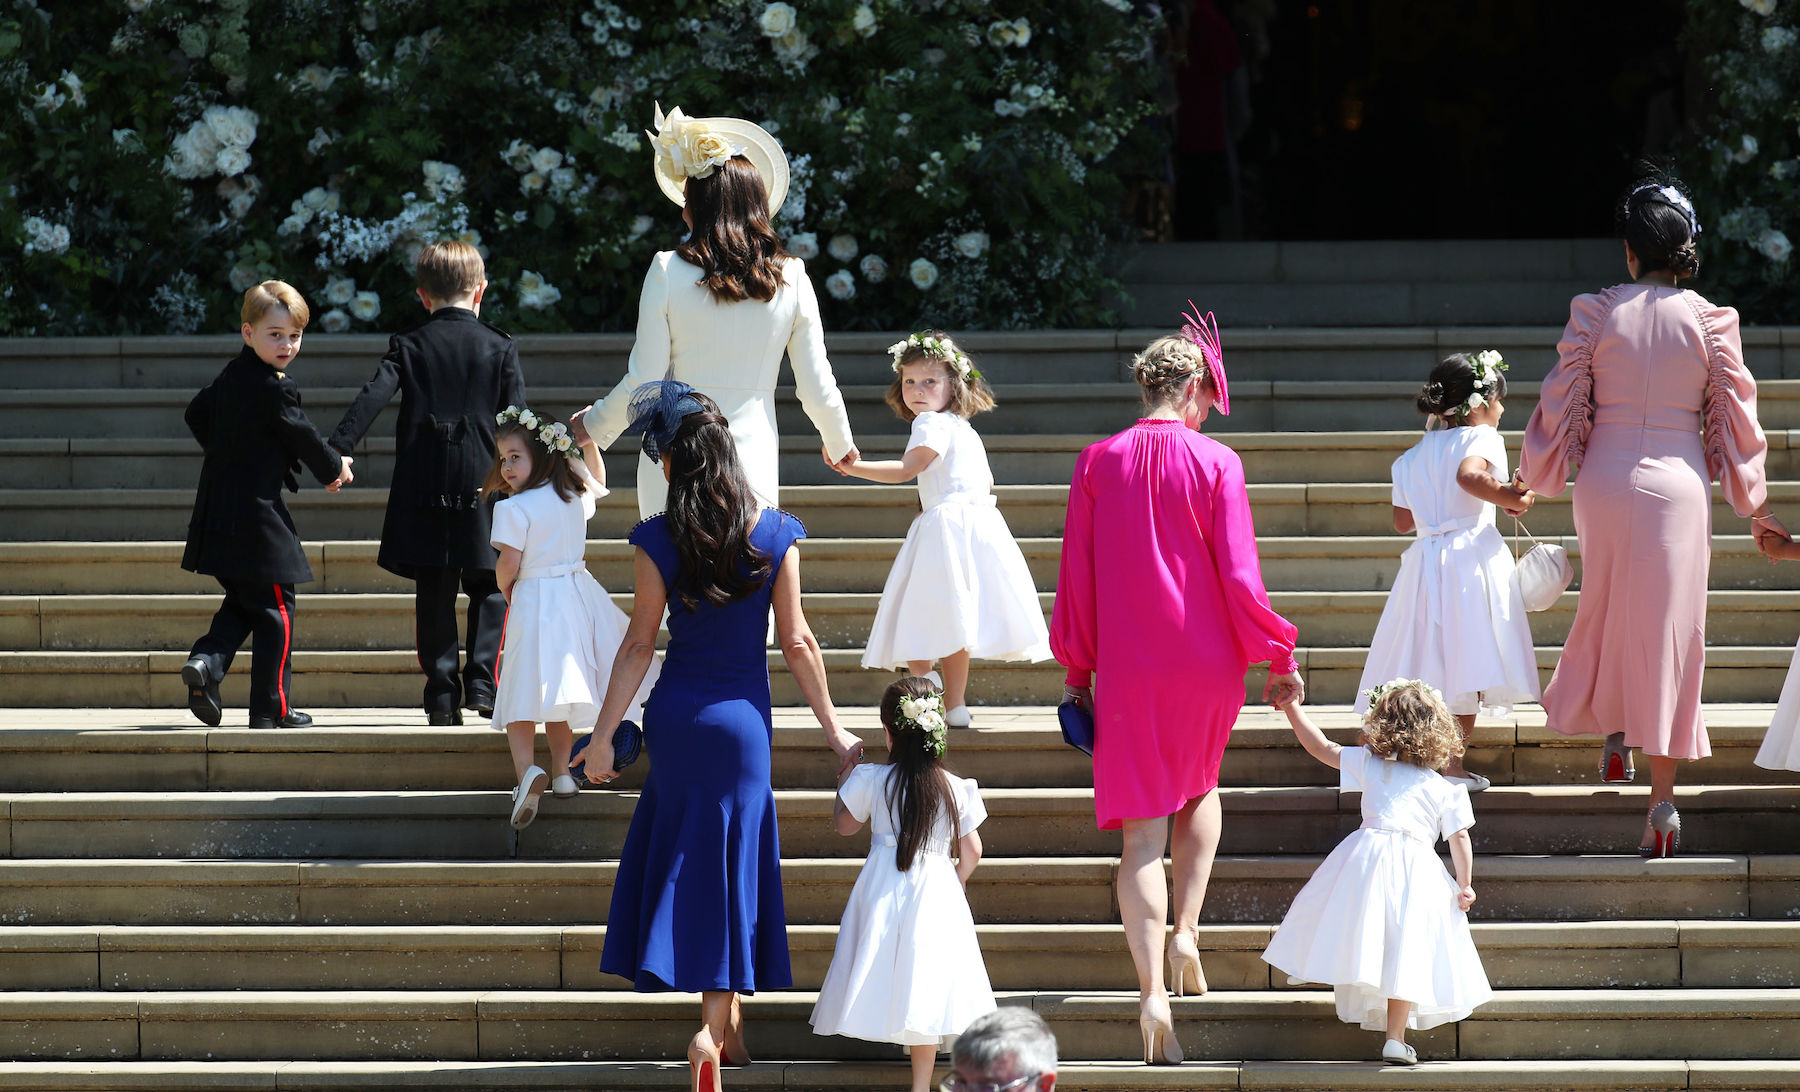 <div class='meta'><div class='origin-logo' data-origin='Creative Content'></div><span class='caption-text' data-credit='DJane Barlow - WPA Pool/Getty Images'>Guests and family members arrive at St. George's Chapel at Windsor Castle for the wedding of Prince Harry and Meghan Markle.</span></div>